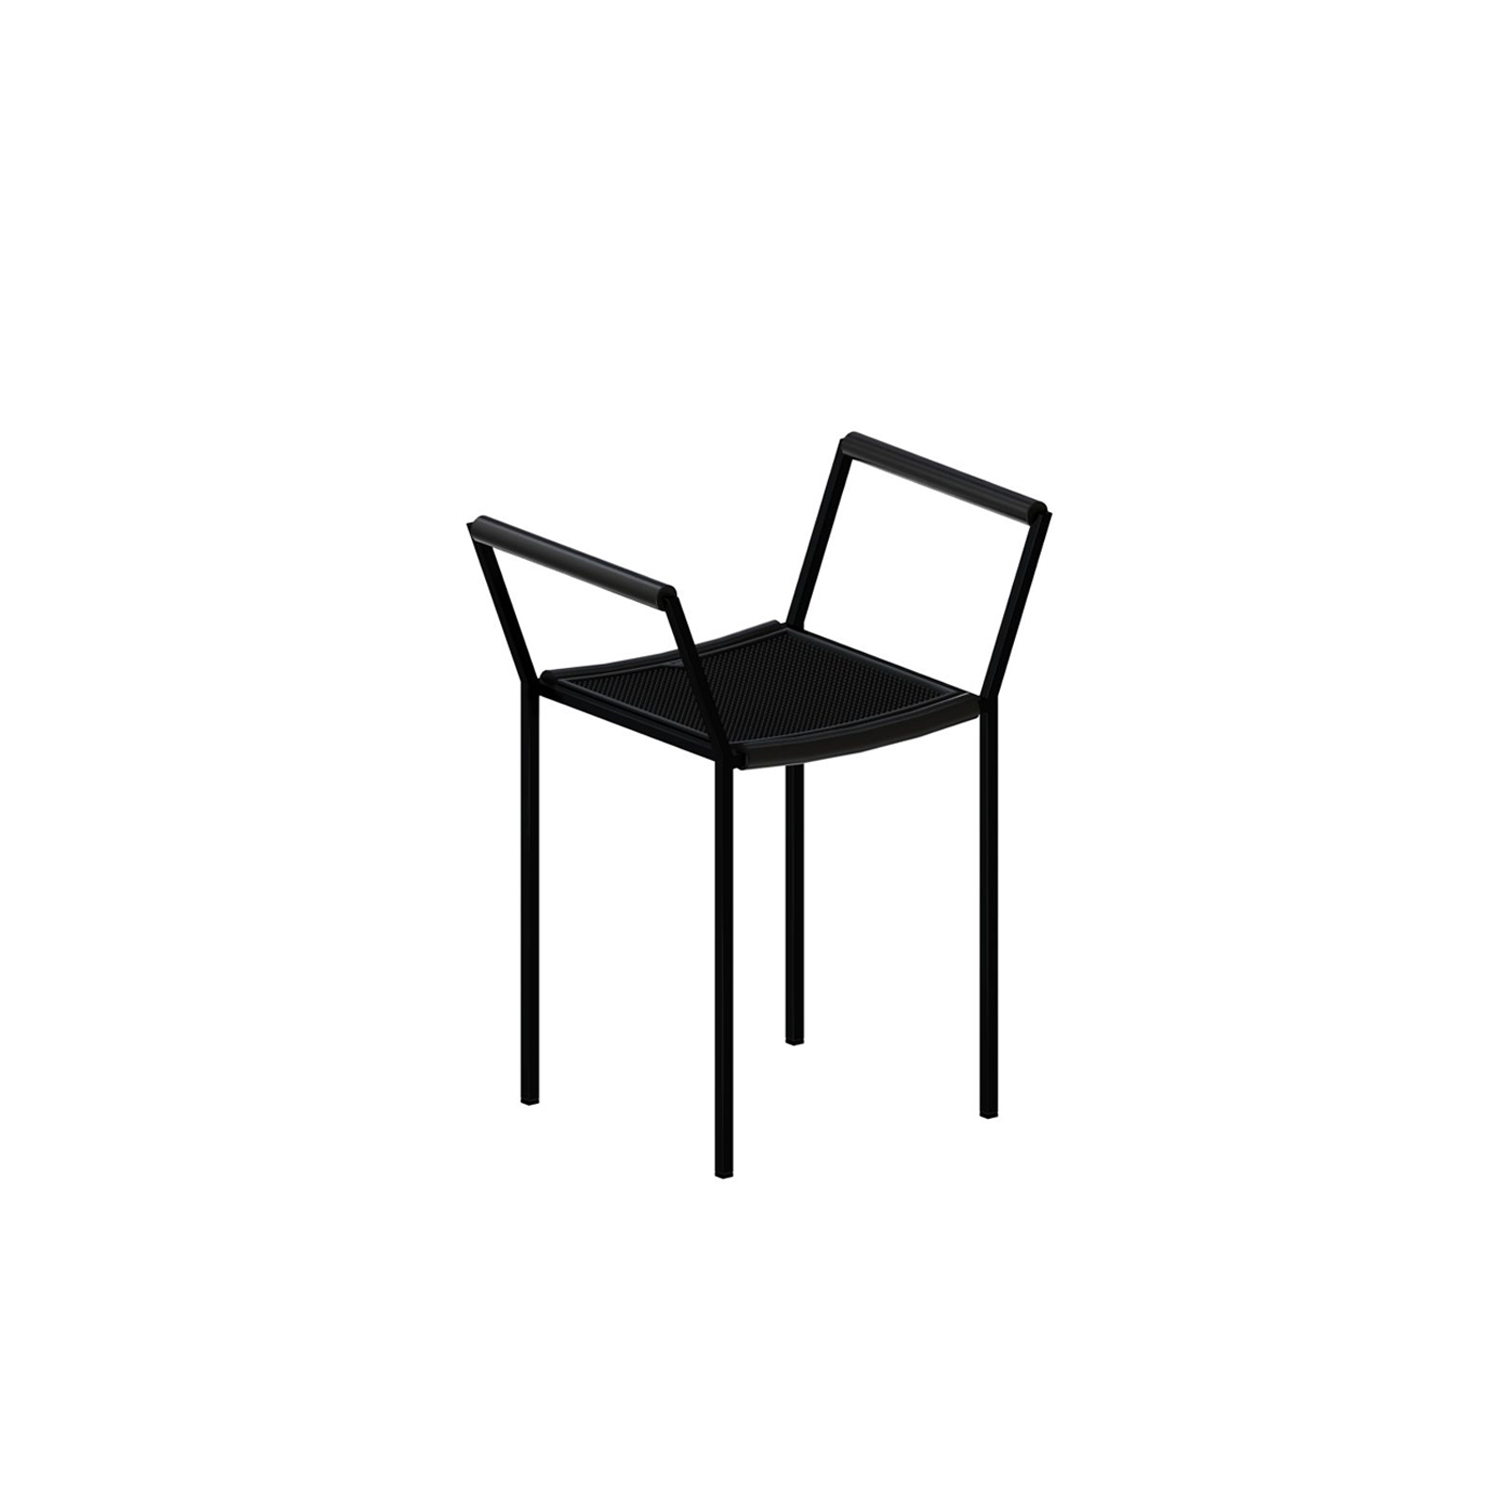 Savonarola Chair - This modern chair was designed in Italy by Maurizio Peregalli. It features a square seat and a sleek all-black steel square frame with armrests. The frame is embossed black and the seating is made from thousand points rubber. The armrests are wrapped in black extruded rubber for added comfort. 